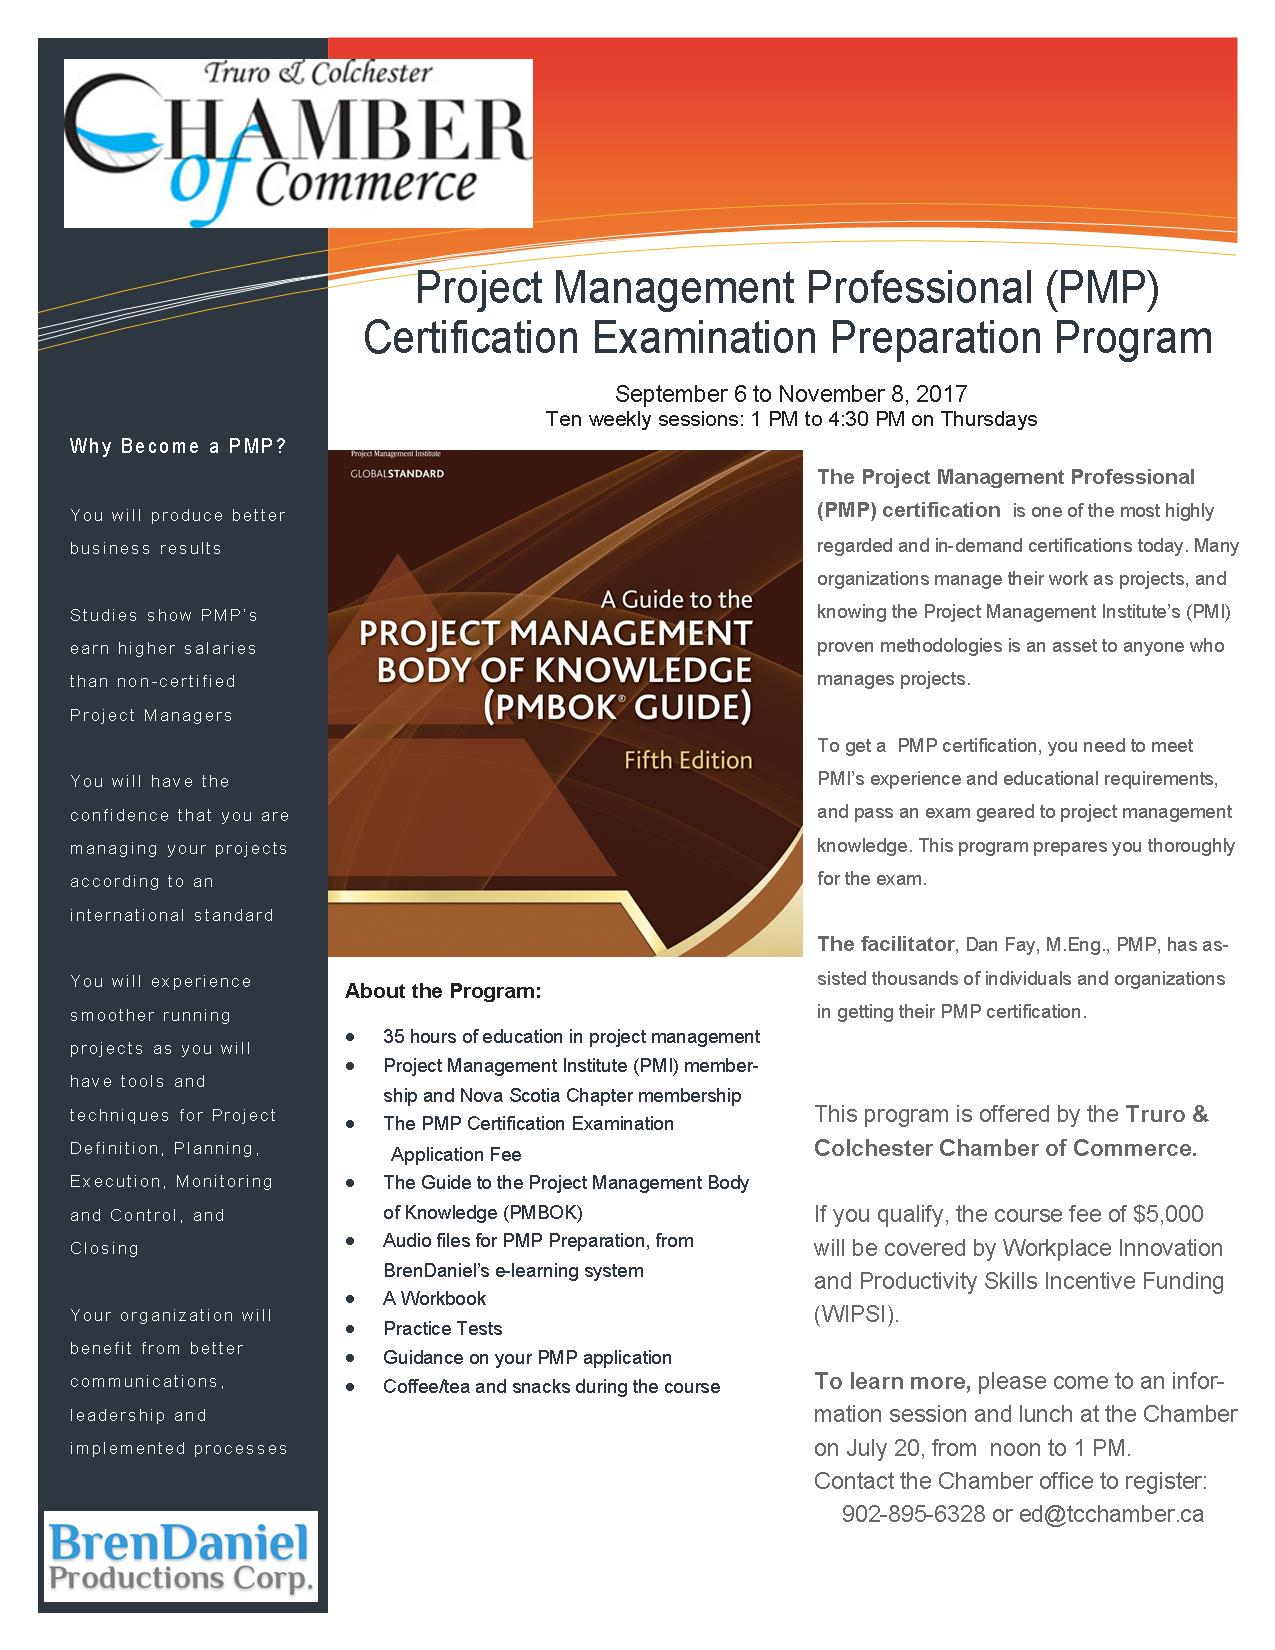 Chamber Hosting Project Management Professional Training Program